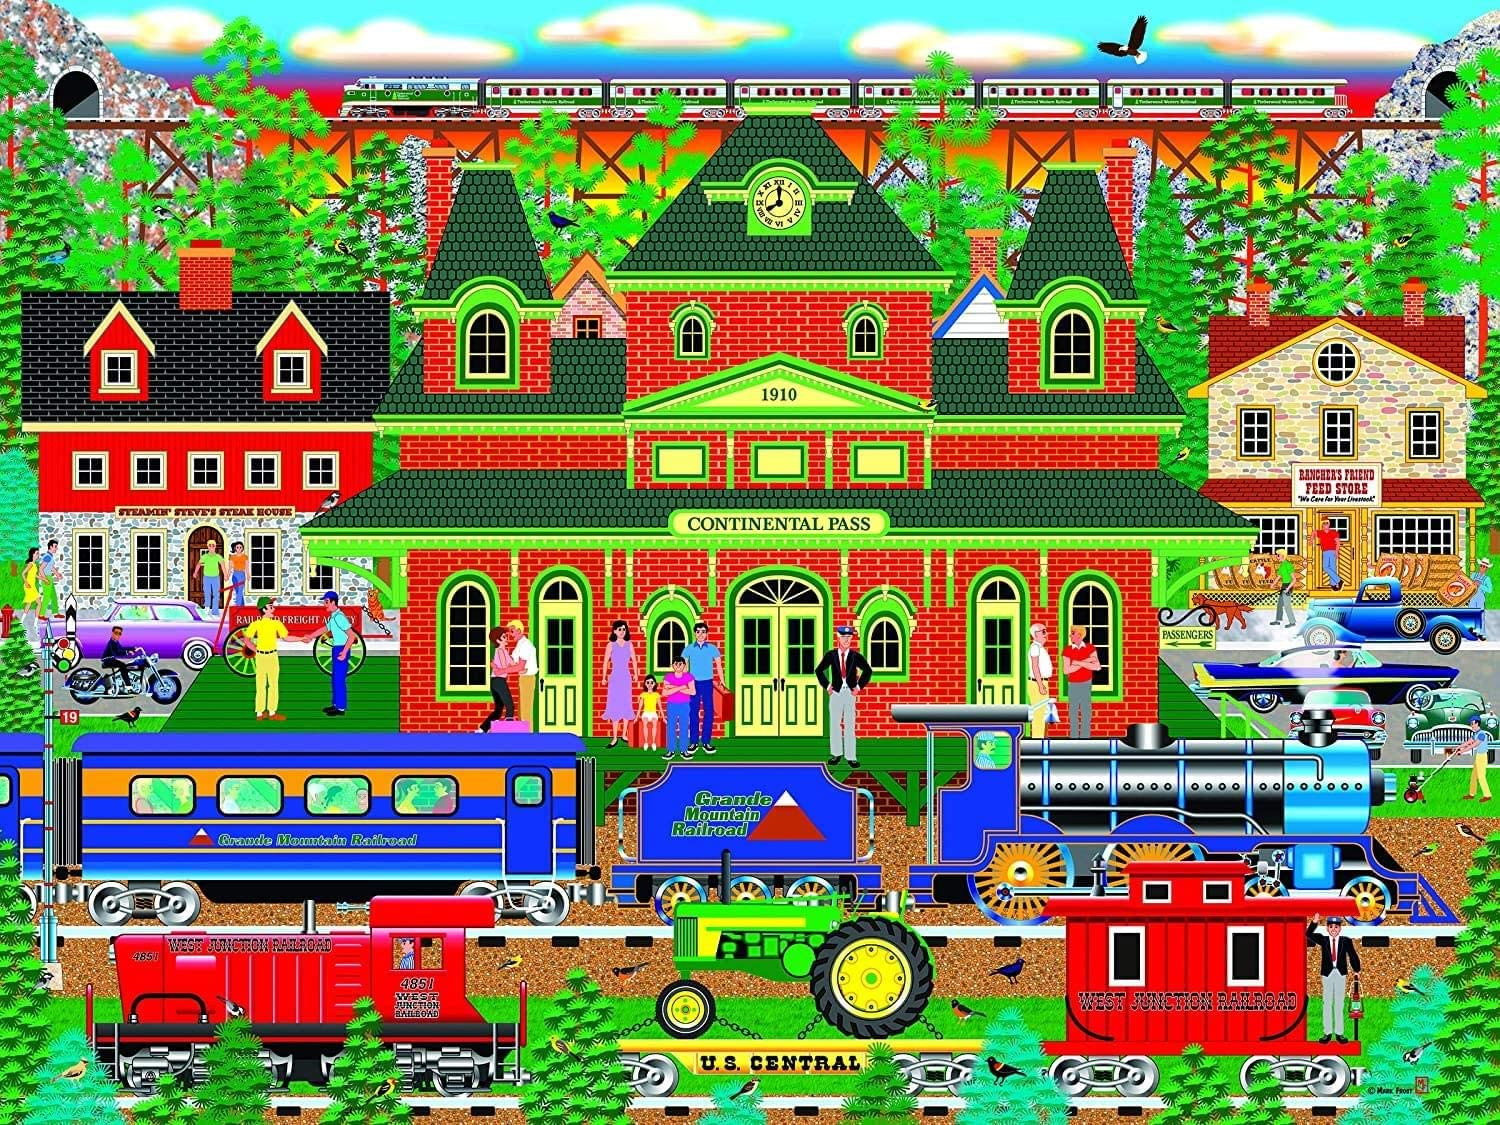 Mountain Rail Holiday, Home Country Collection 1000 Piece Jigsaw Puzzle by Artist: Mark Frost